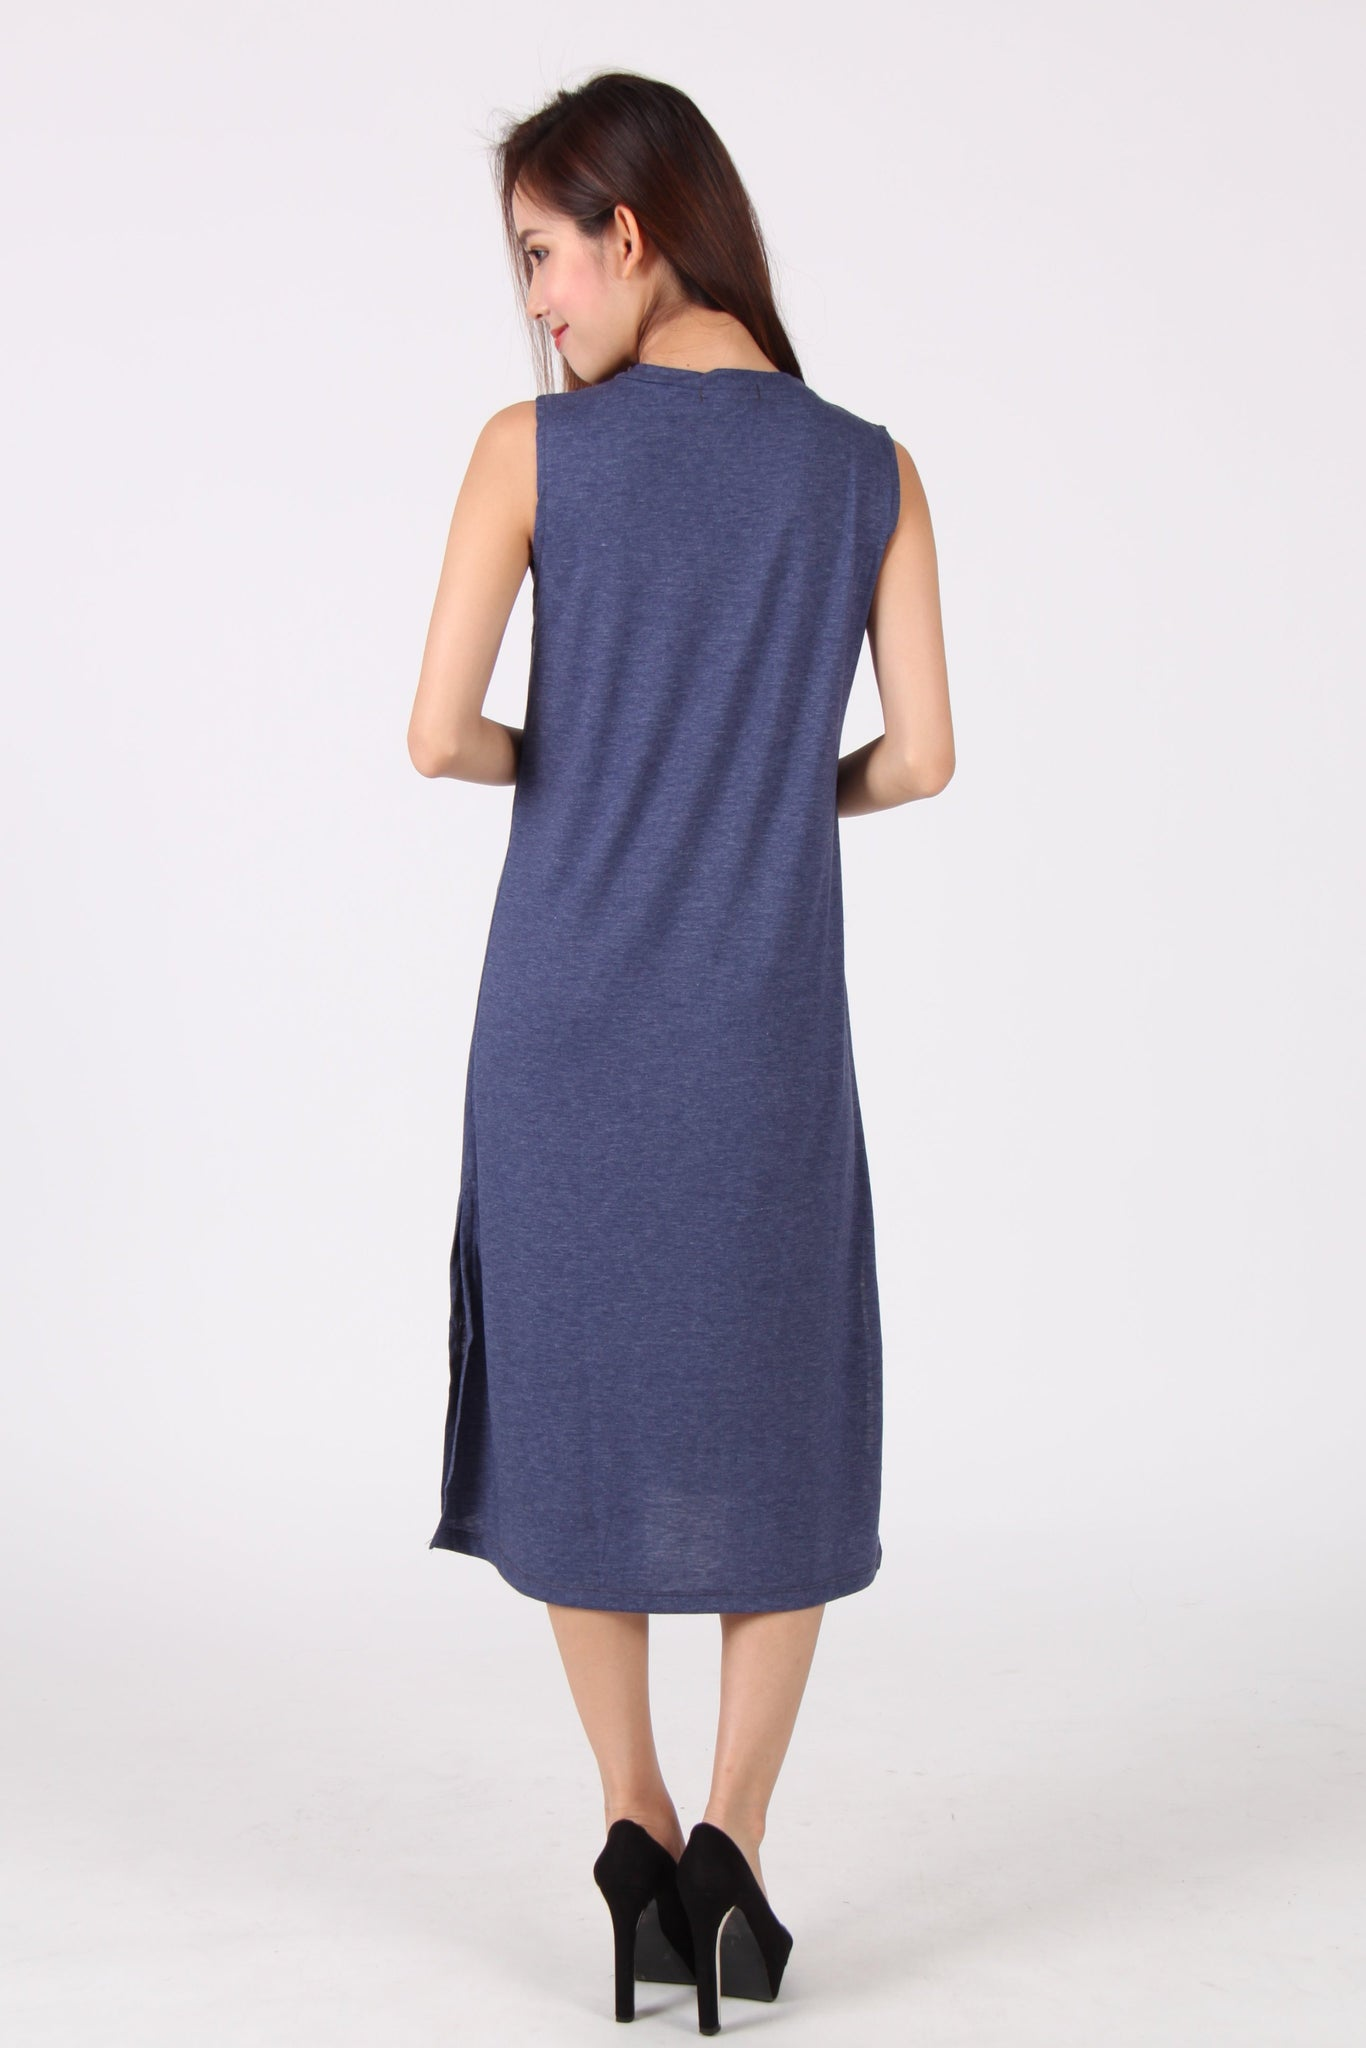 Basic Sleeveless Side Slit Midi Dress in Navy Blue